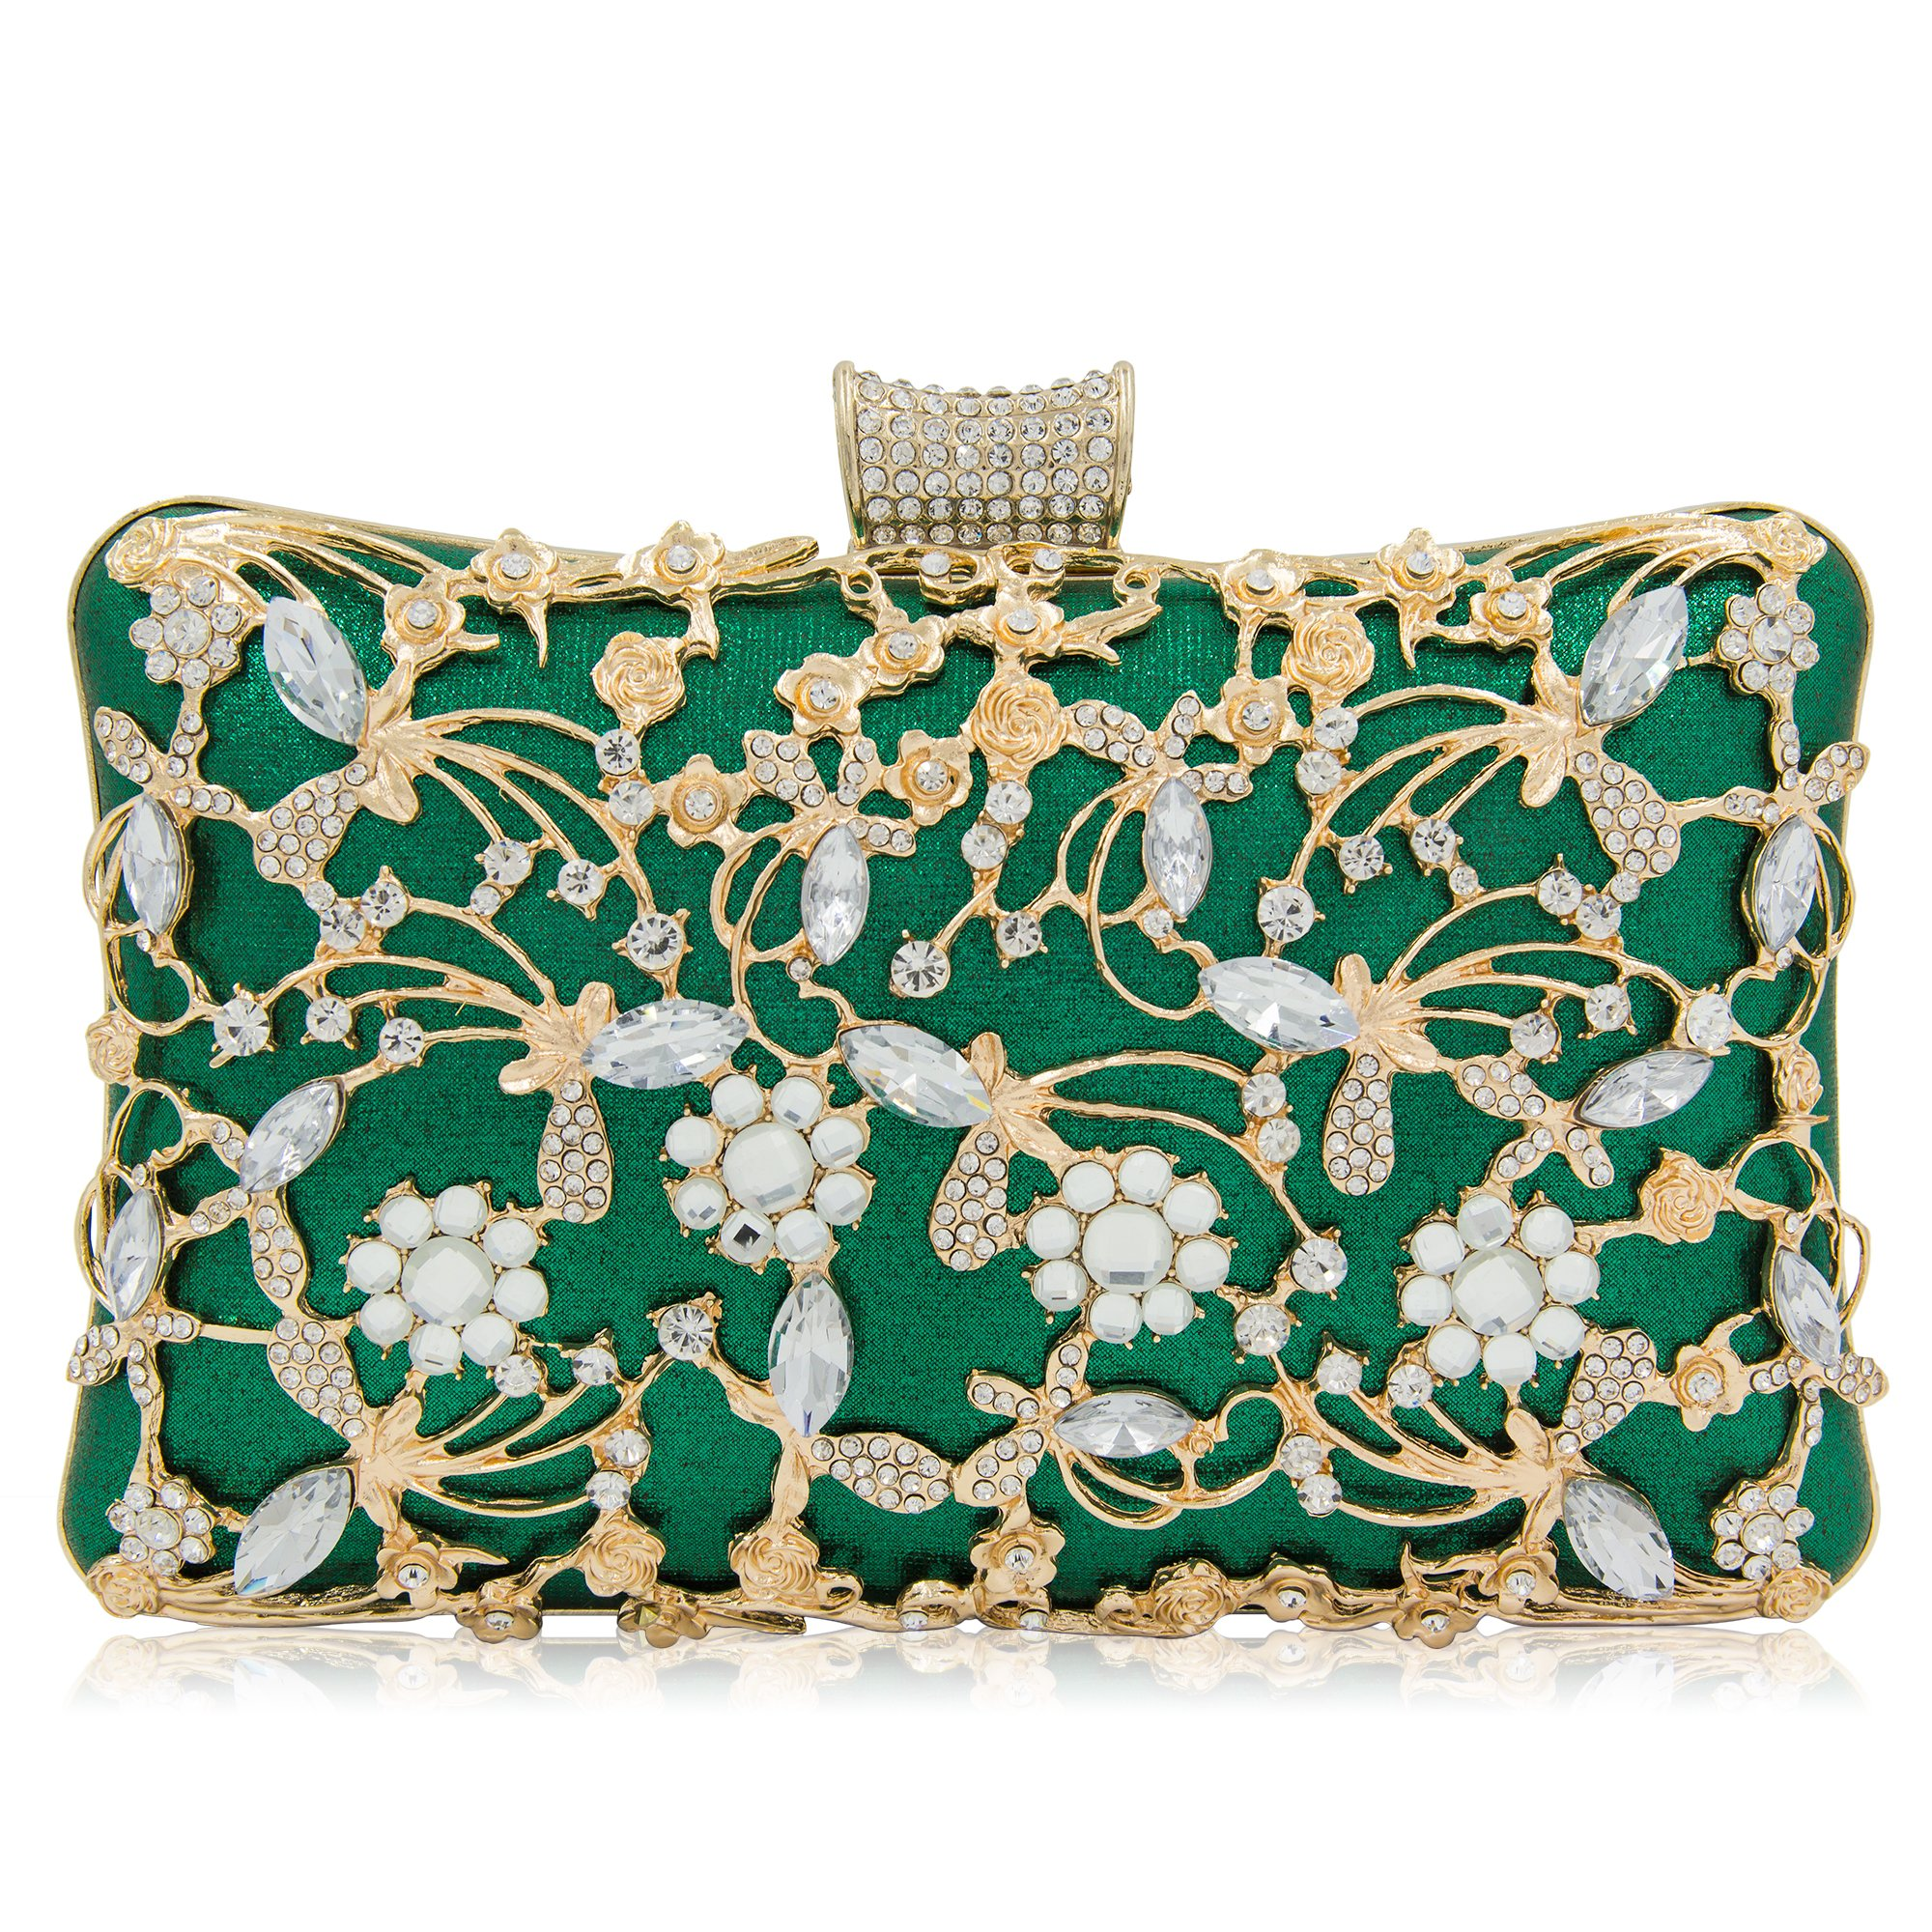 Women Crystal Clutches Bridal Evening Bags And Clutches For Women Large Handbag Clutch Purse With Strap (Green)